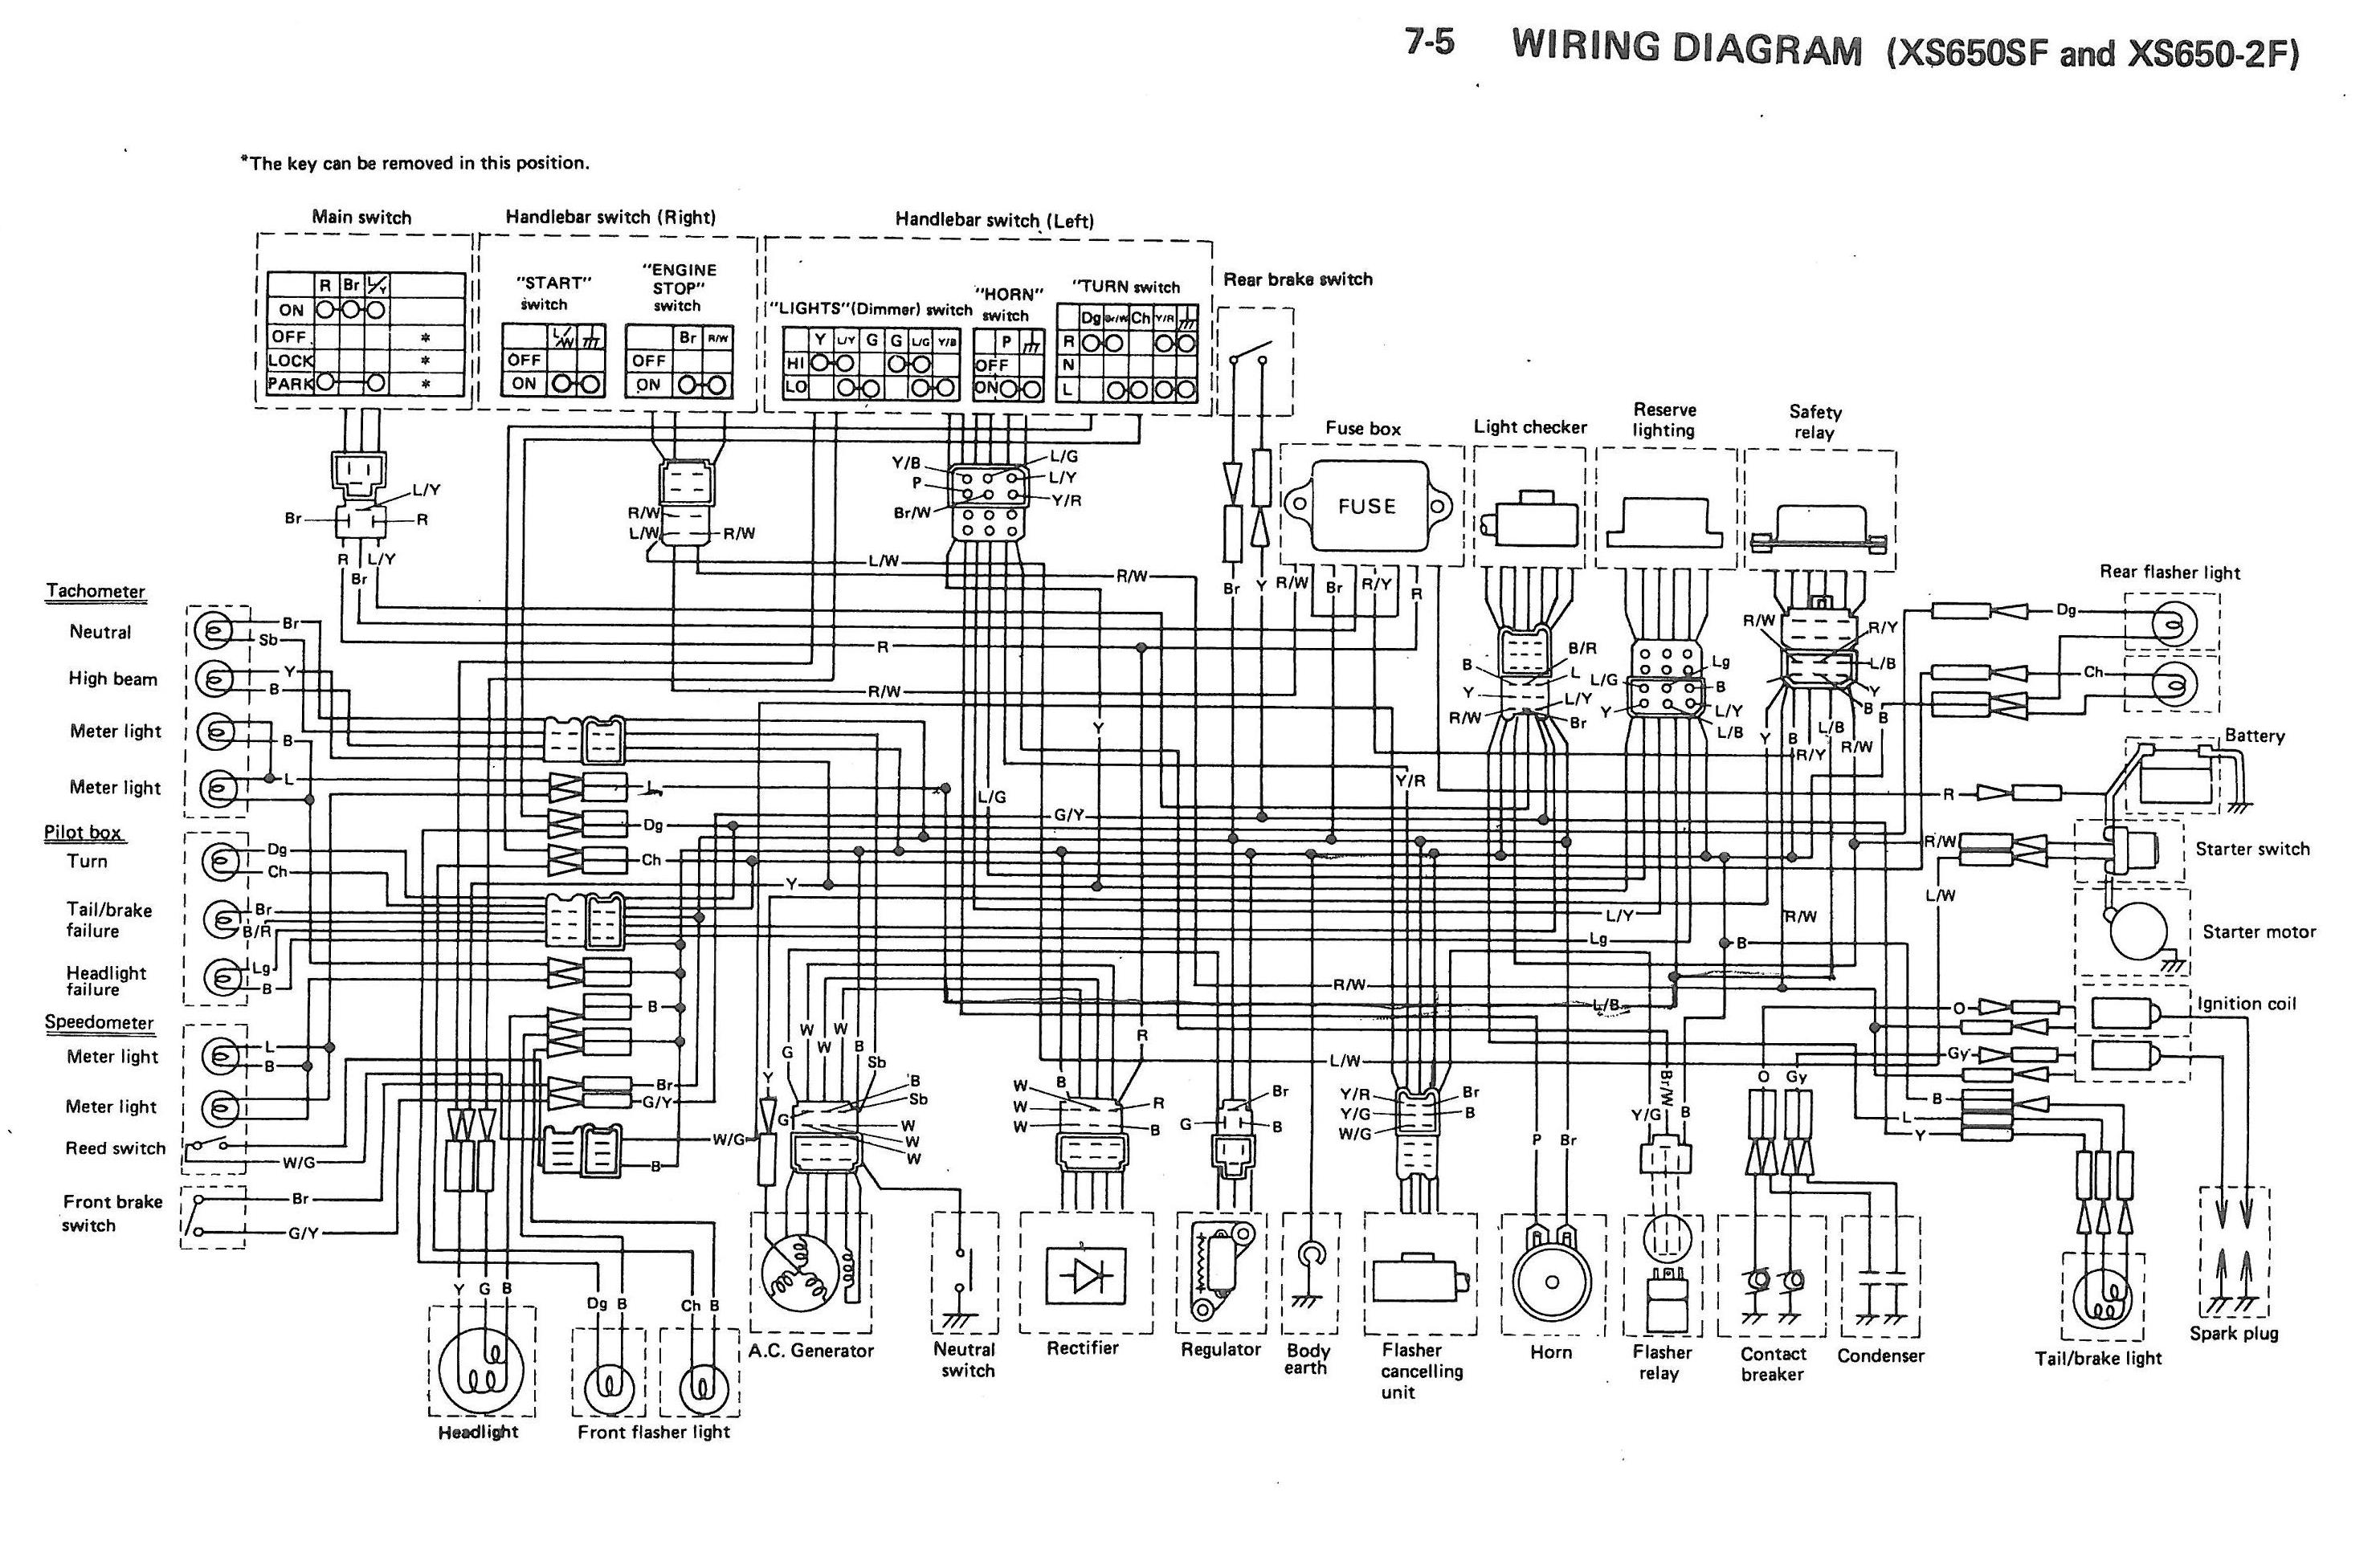 79 xs650sf 2f xs650 79 xs650sf 2f wiring diagrams thexscafe 1979 xs650 wiring diagram at crackthecode.co